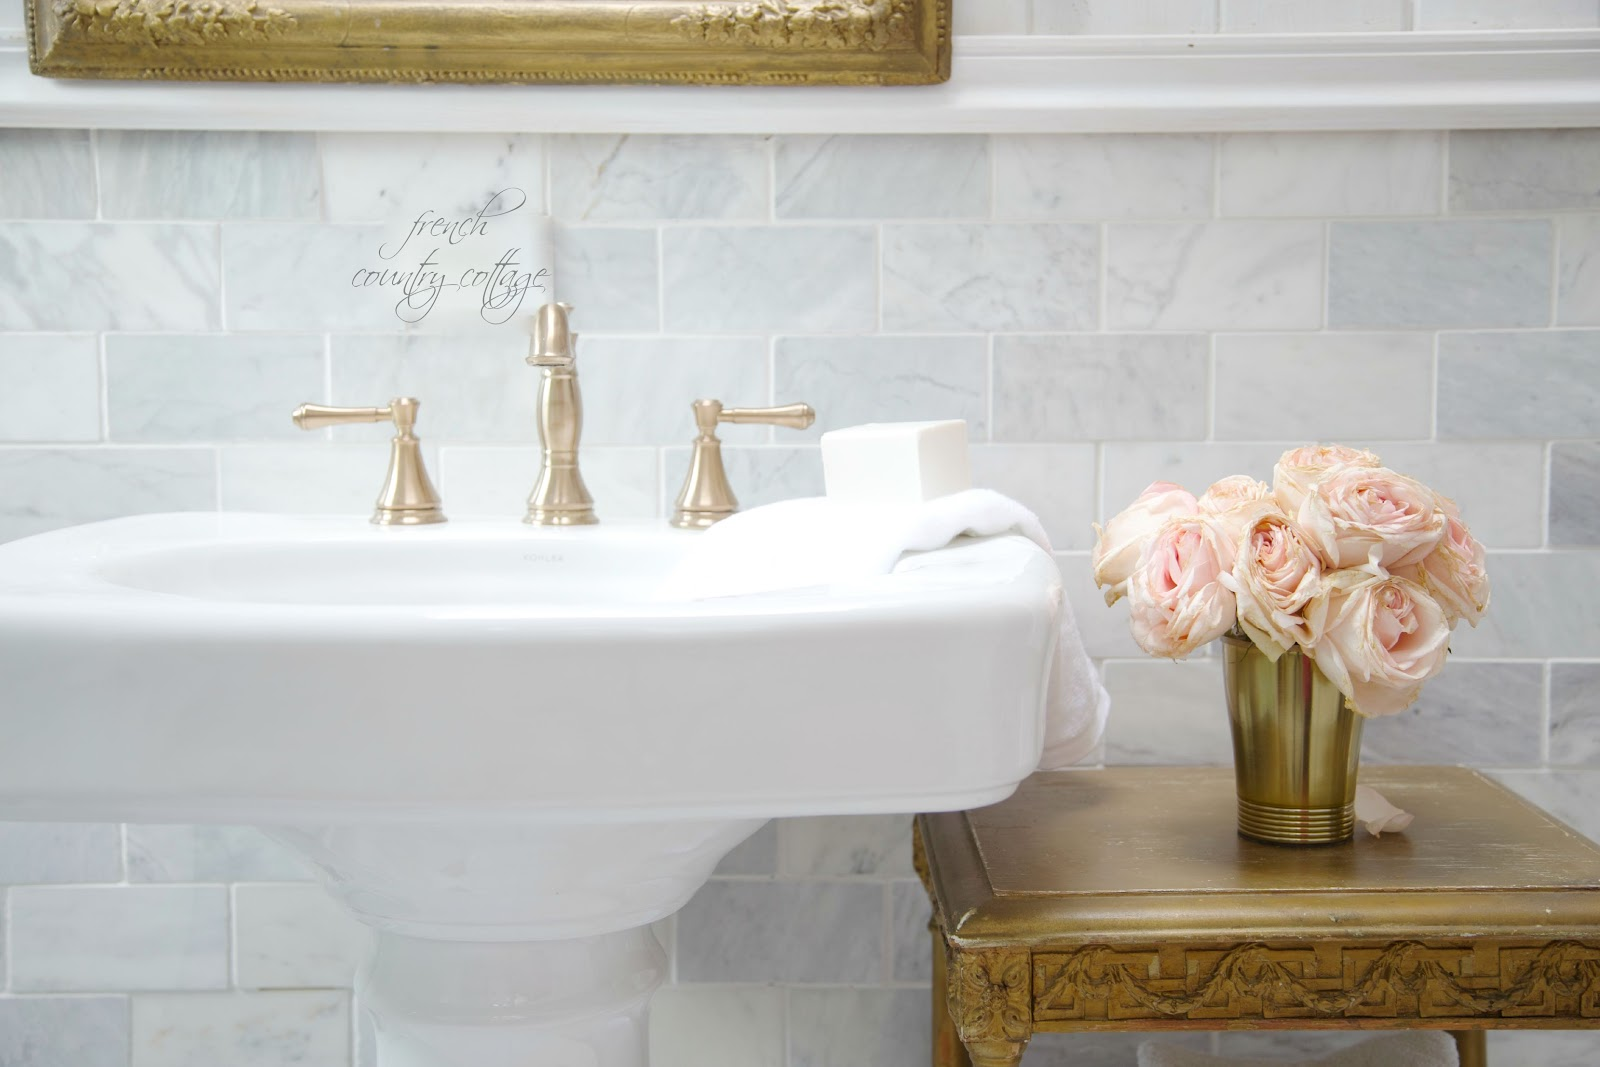 Details The perfect pedestal sink  FRENCH COUNTRY COTTAGE